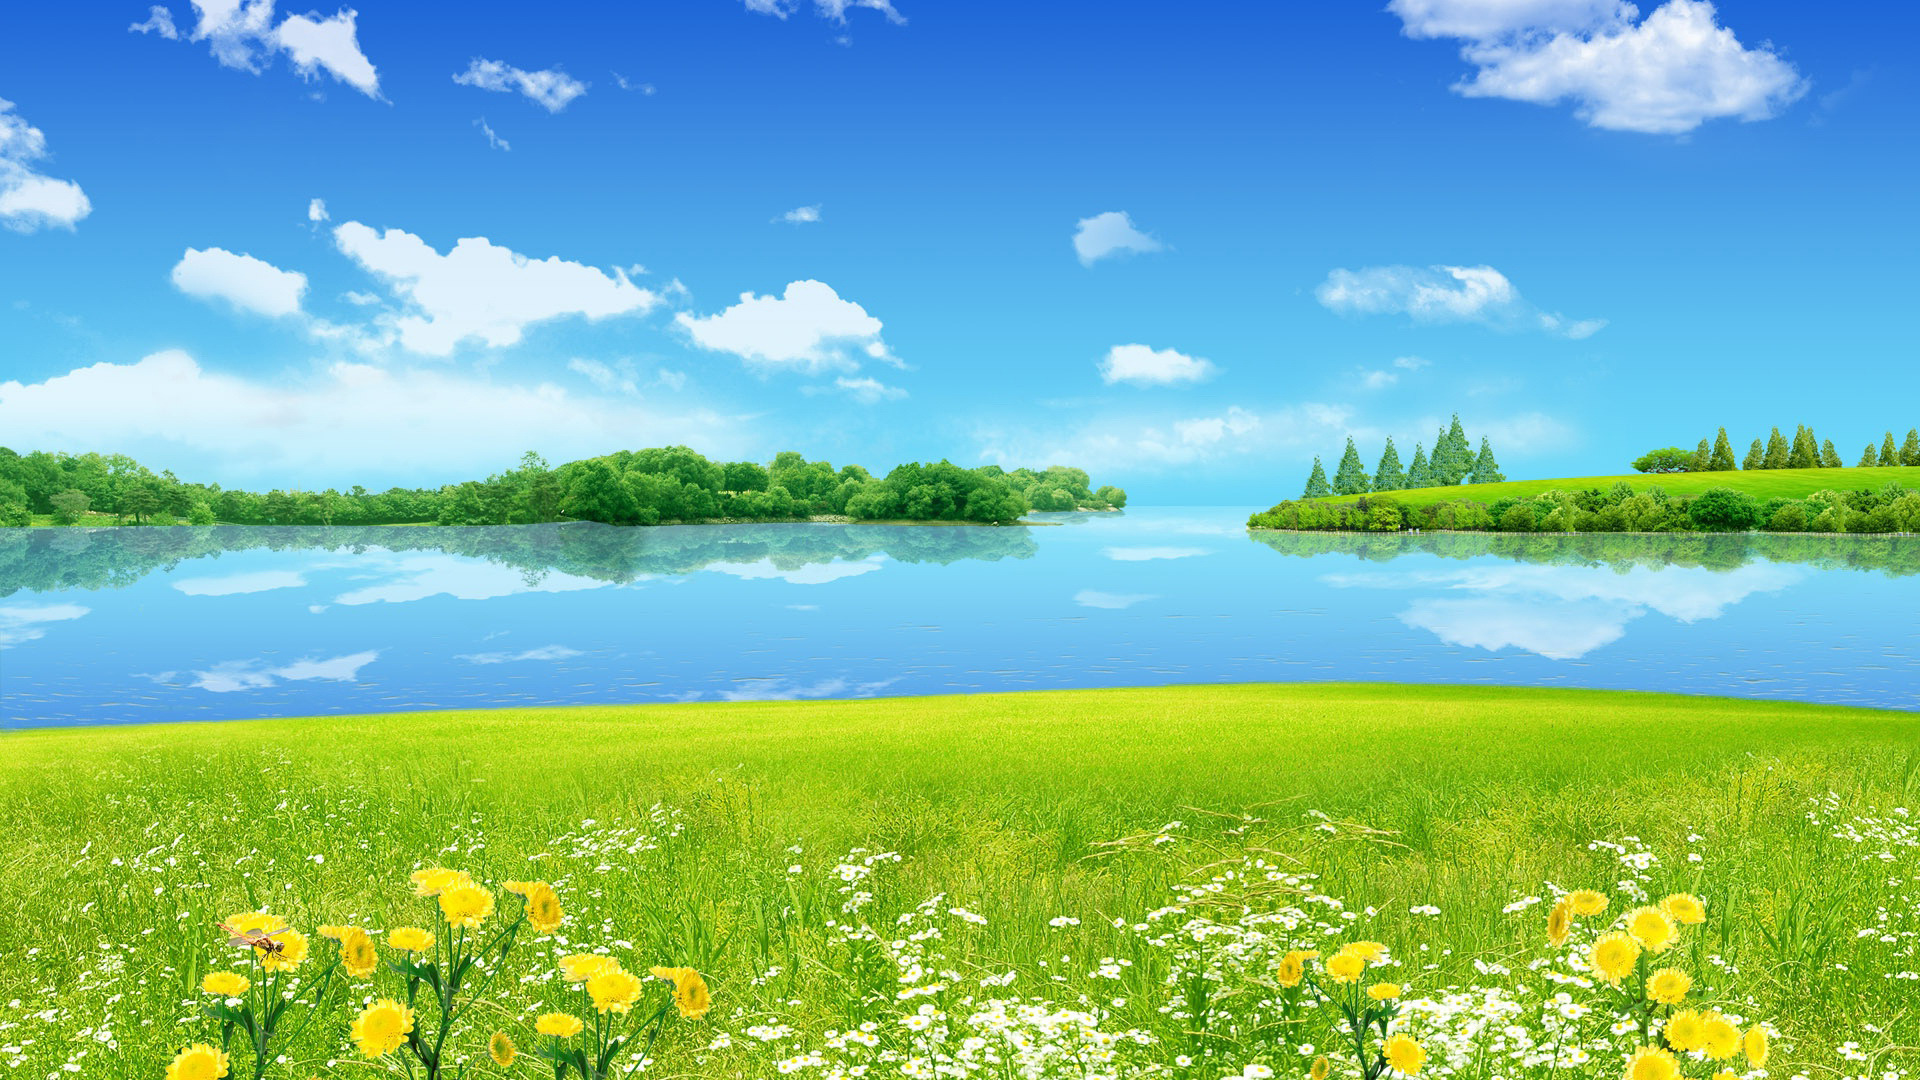 download Sunny Spring Day Sunny spring day hd wallpaper 1920x1080